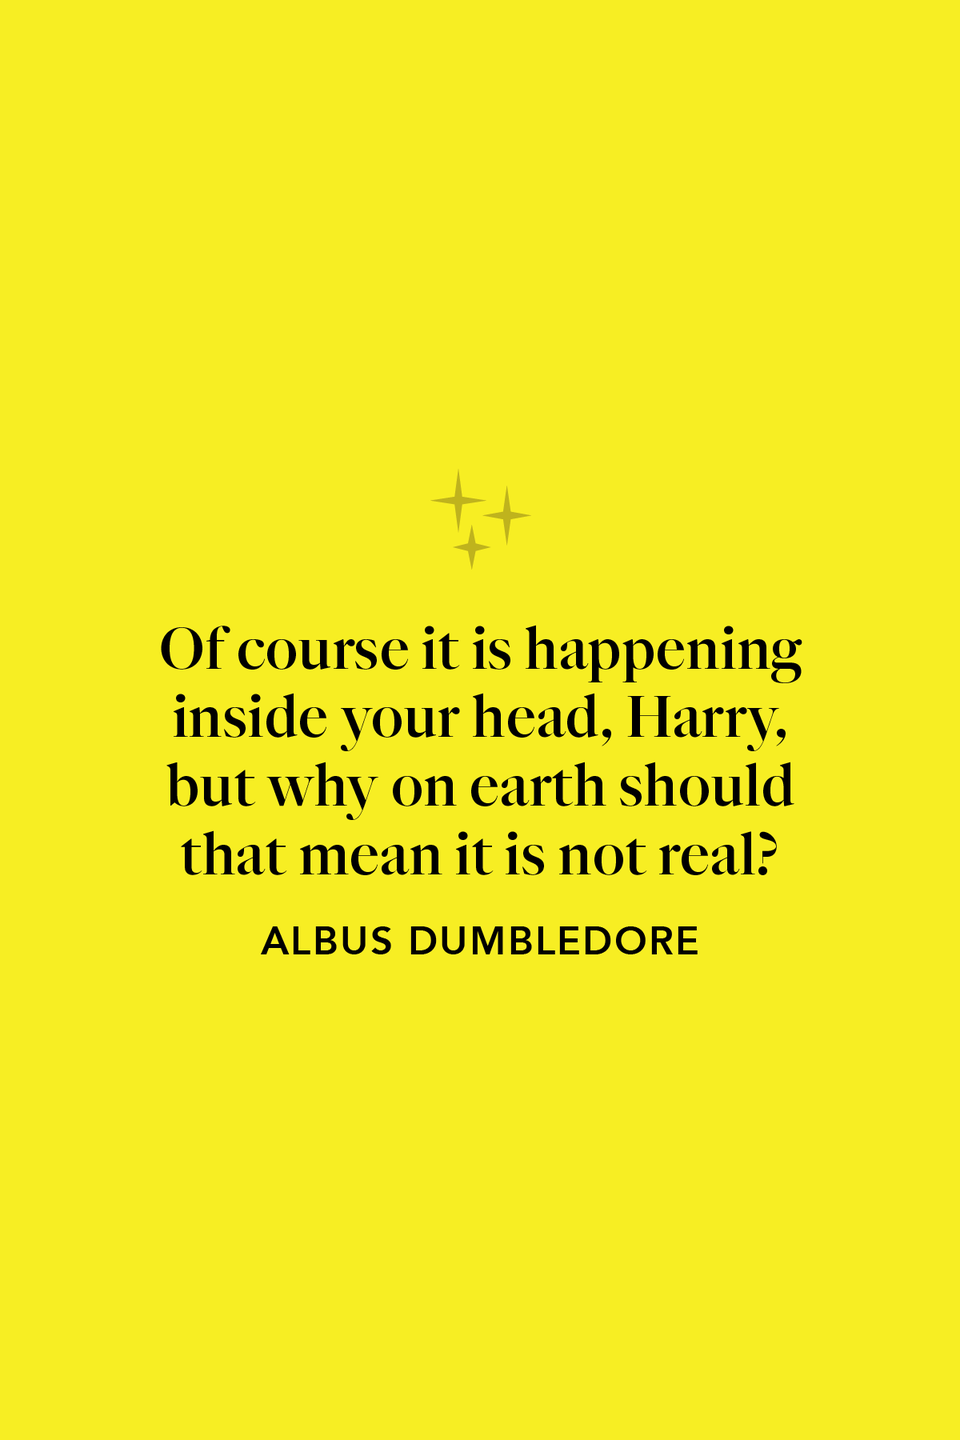 """<p>""""Of course it is happening inside your head, Harry, but why on earth should that mean it is not real?"""" Rowling has admitted that this Dumbledore line from <em>The Deathly Hallows </em>is her <a href=""""http://www.deadlinenews.co.uk/2014/12/17/jk-rowling-picks-favourite-harry-potter-quote/"""" rel=""""nofollow noopener"""" target=""""_blank"""" data-ylk=""""slk:favorite Harry Potter quote"""" class=""""link rapid-noclick-resp"""">favorite Harry Potter quote</a> of all time.</p>"""